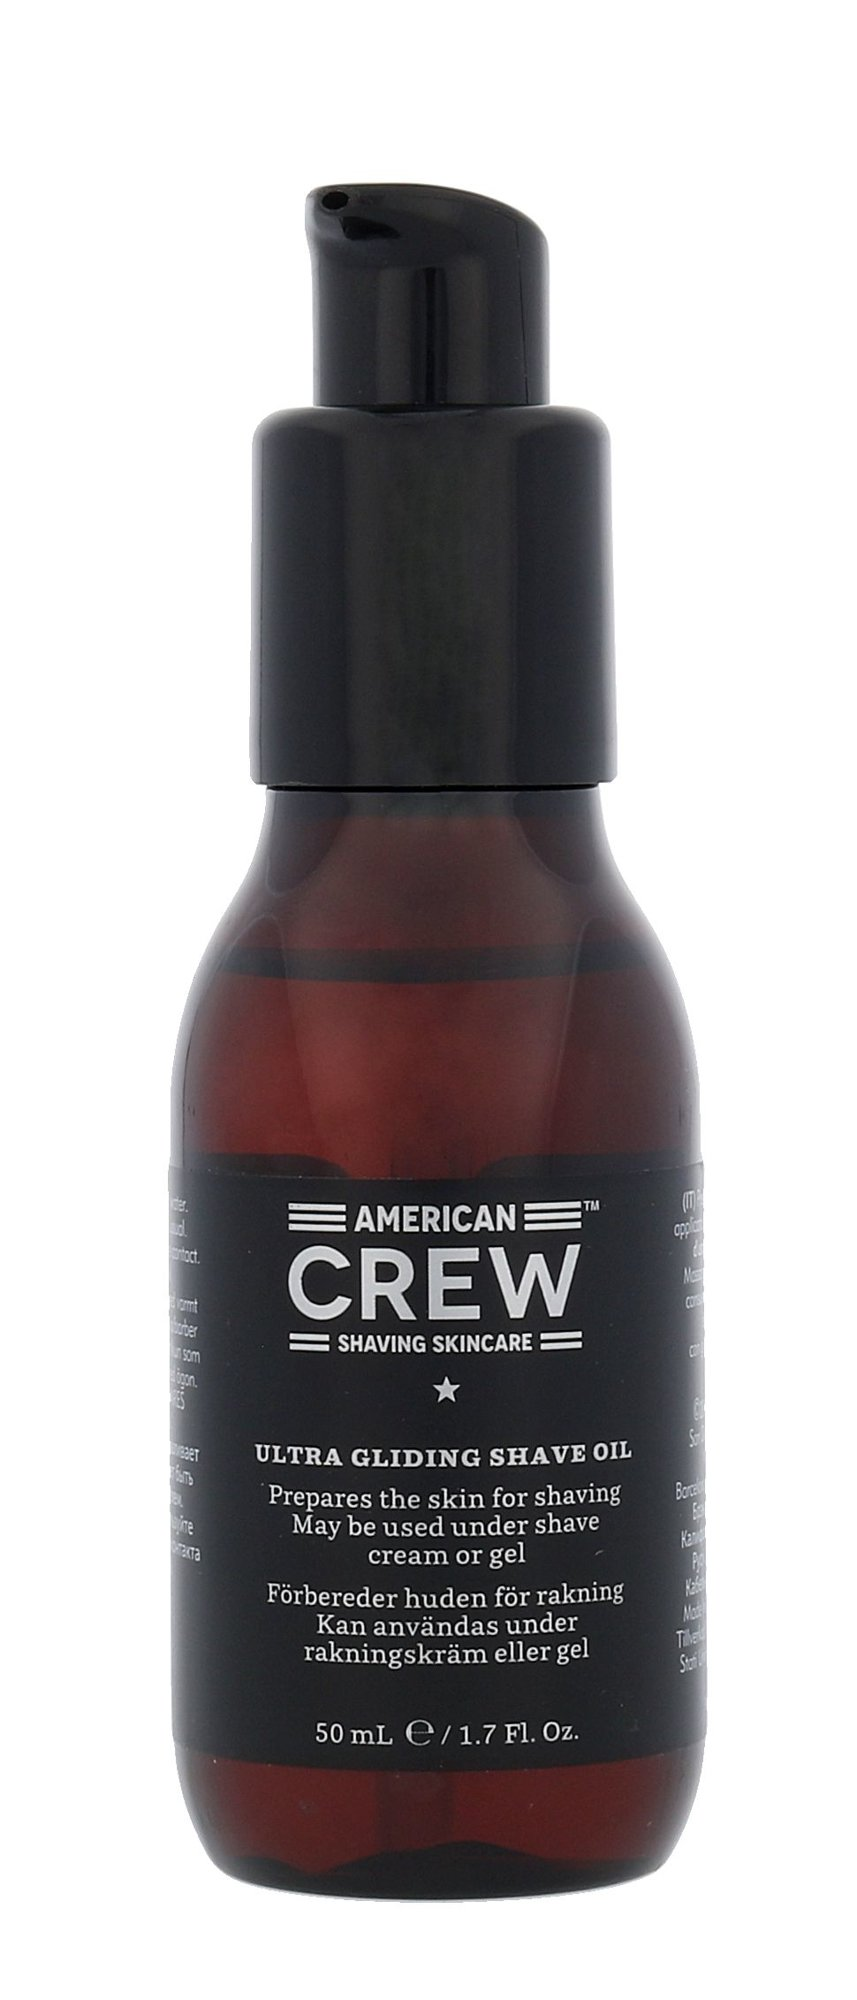 American Crew Shave Cosmetic 50ml  Ultra Gliding Shave Oil